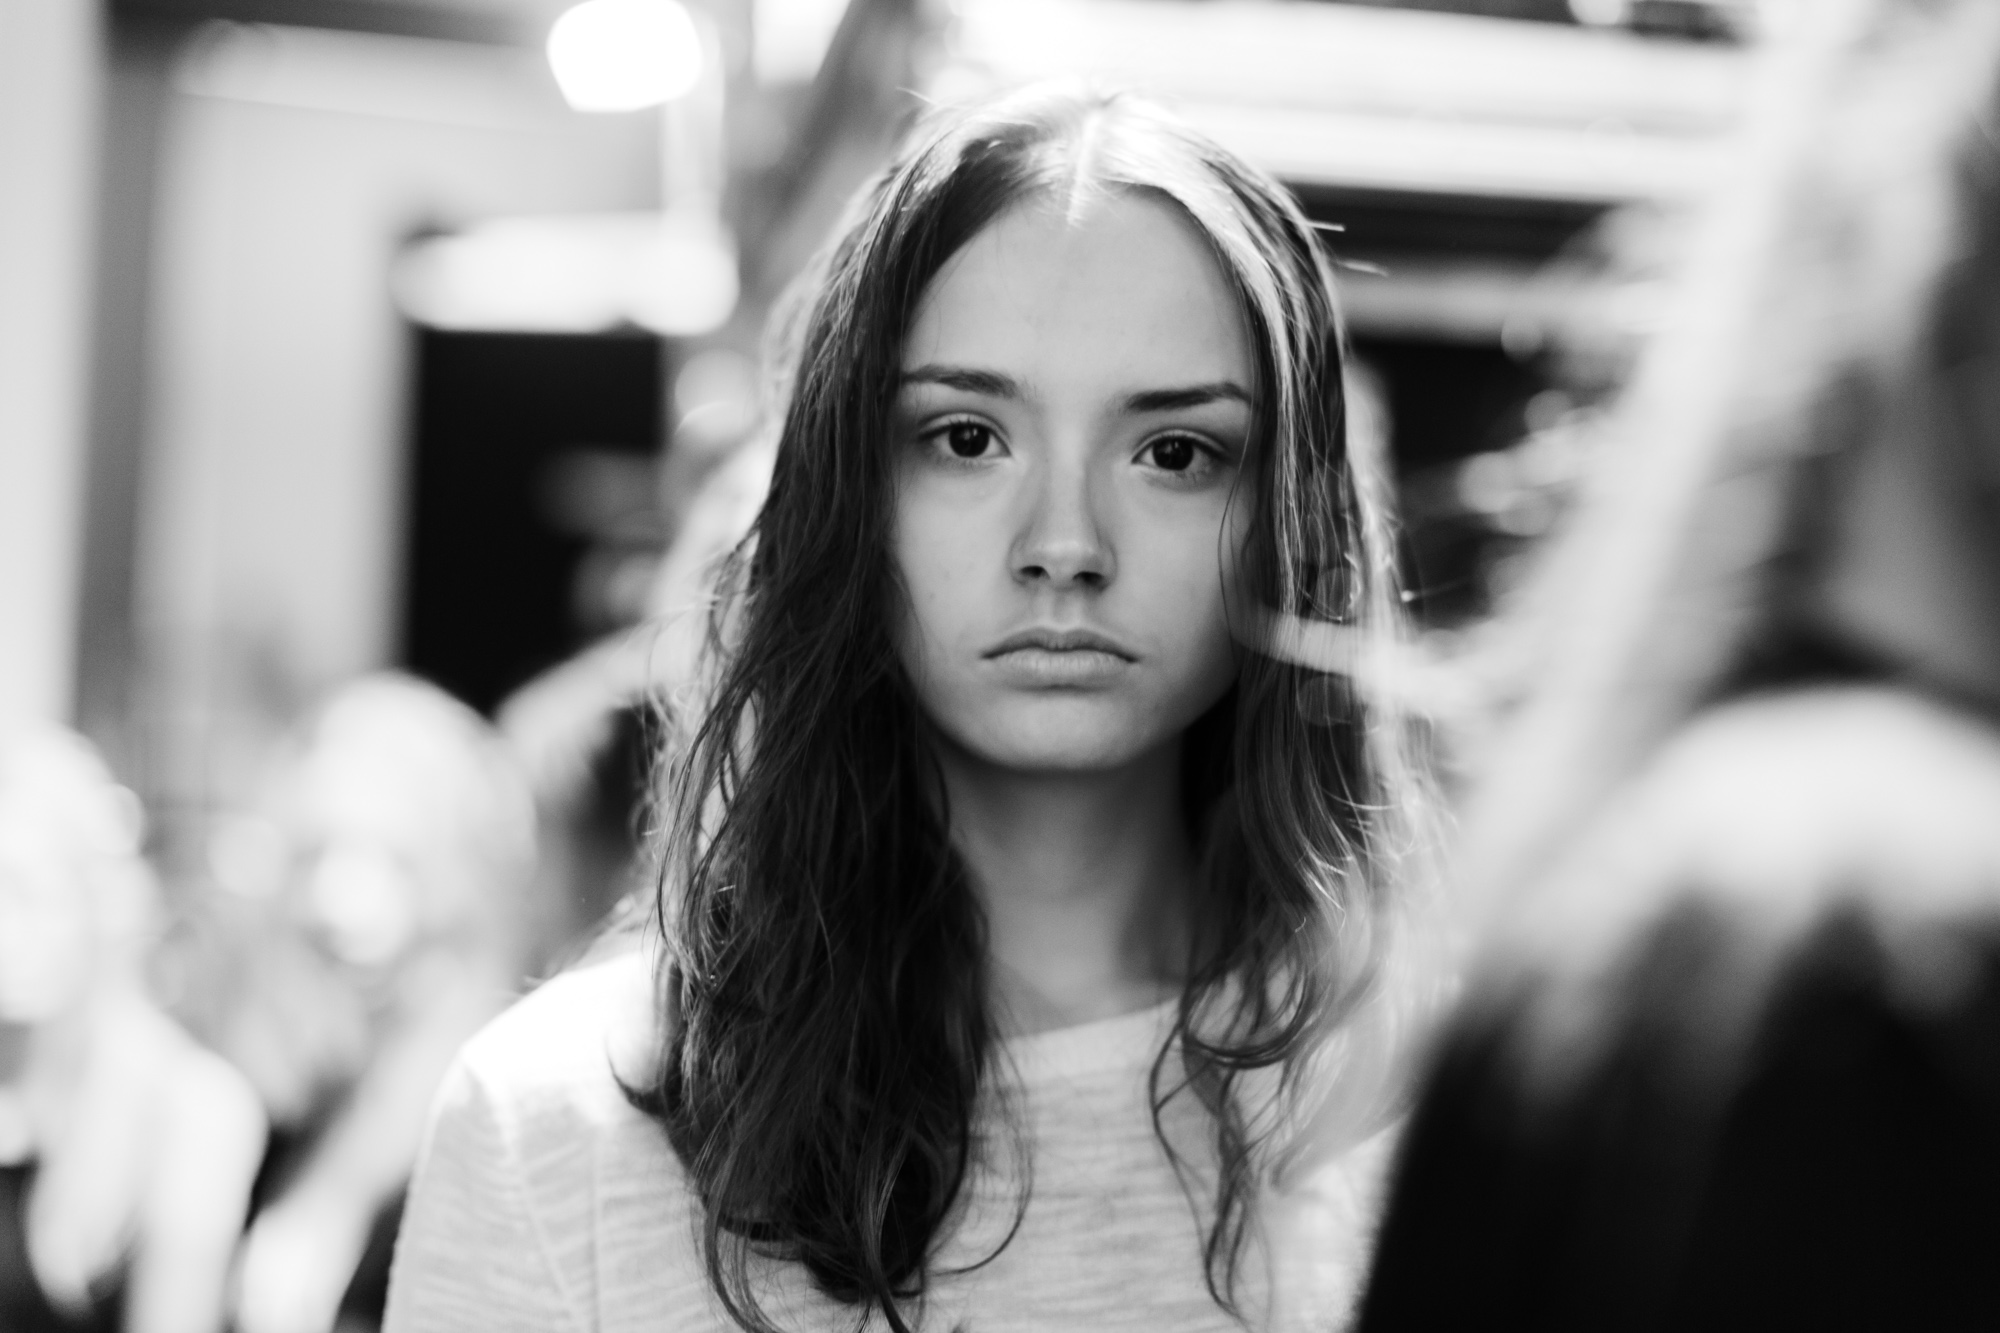 Model, Apu Jan Backstage